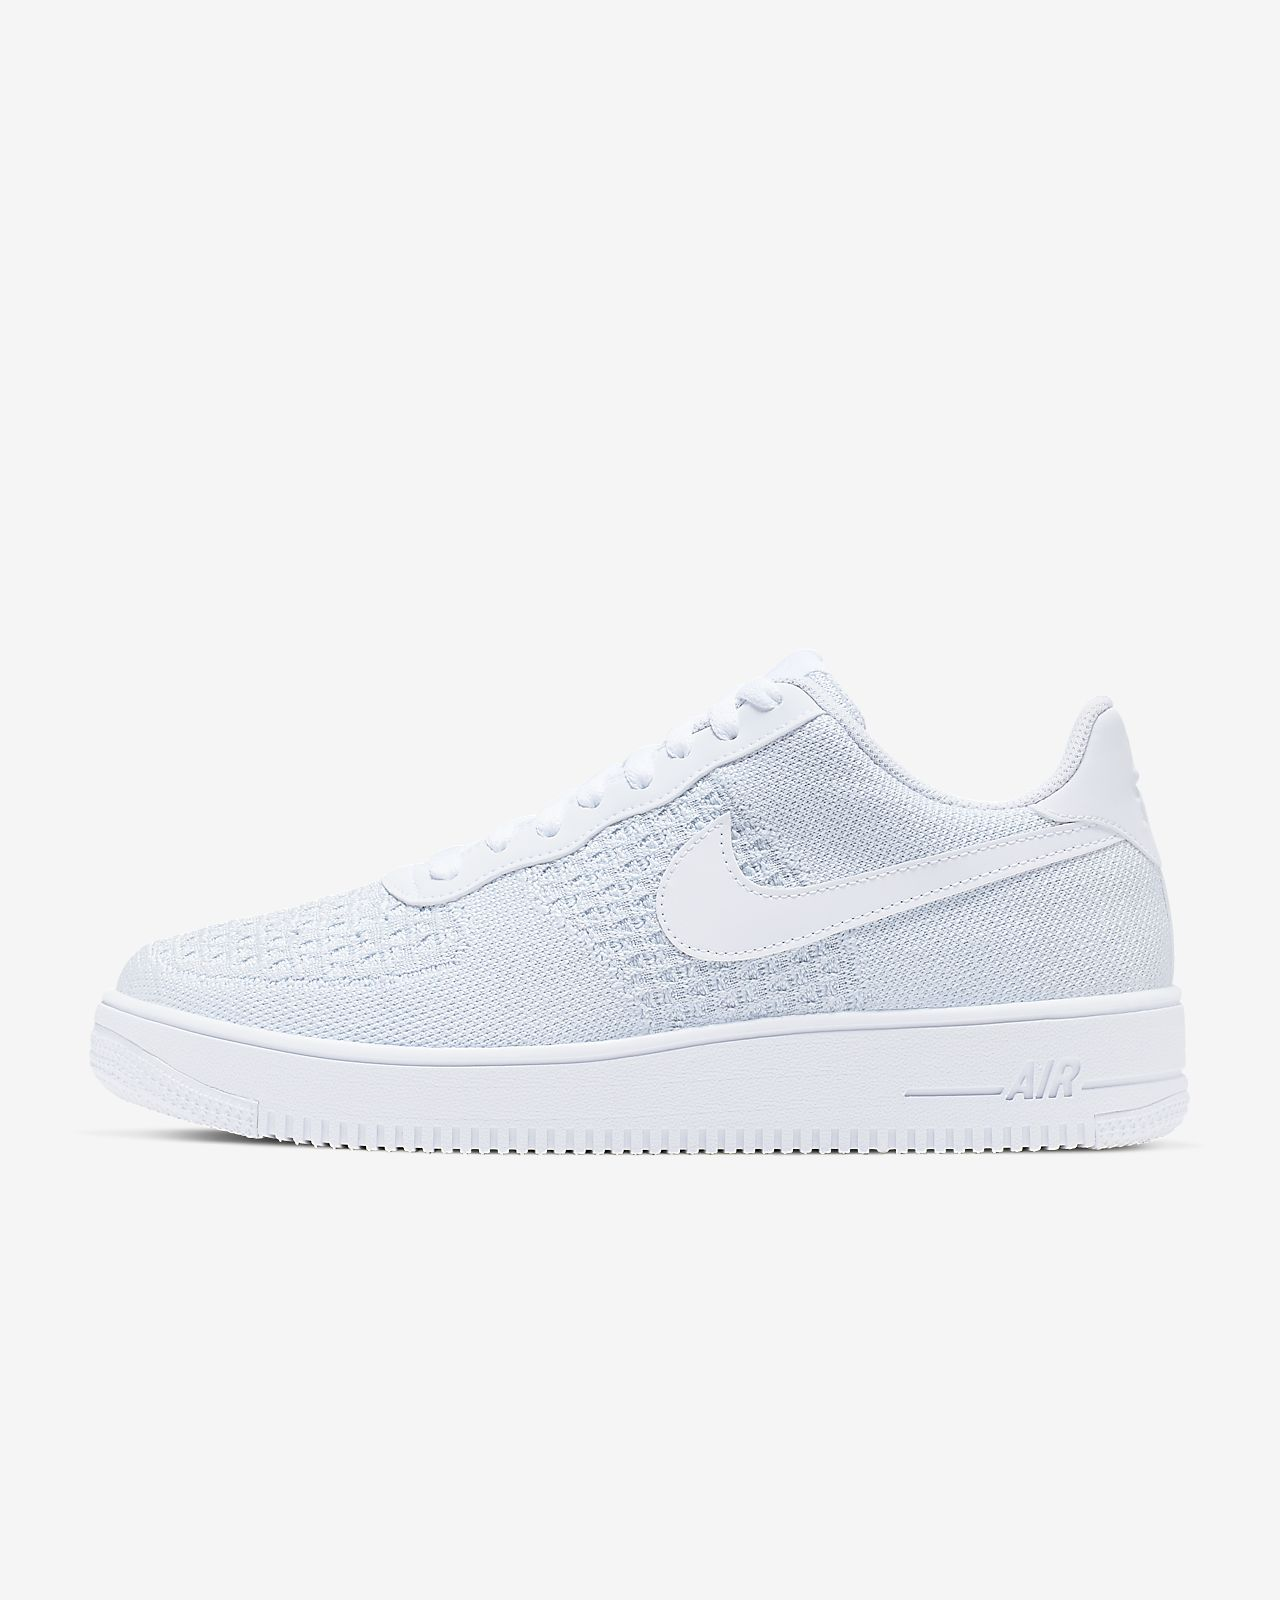 Sko Nike Air Force 1 Flyknit 2.0